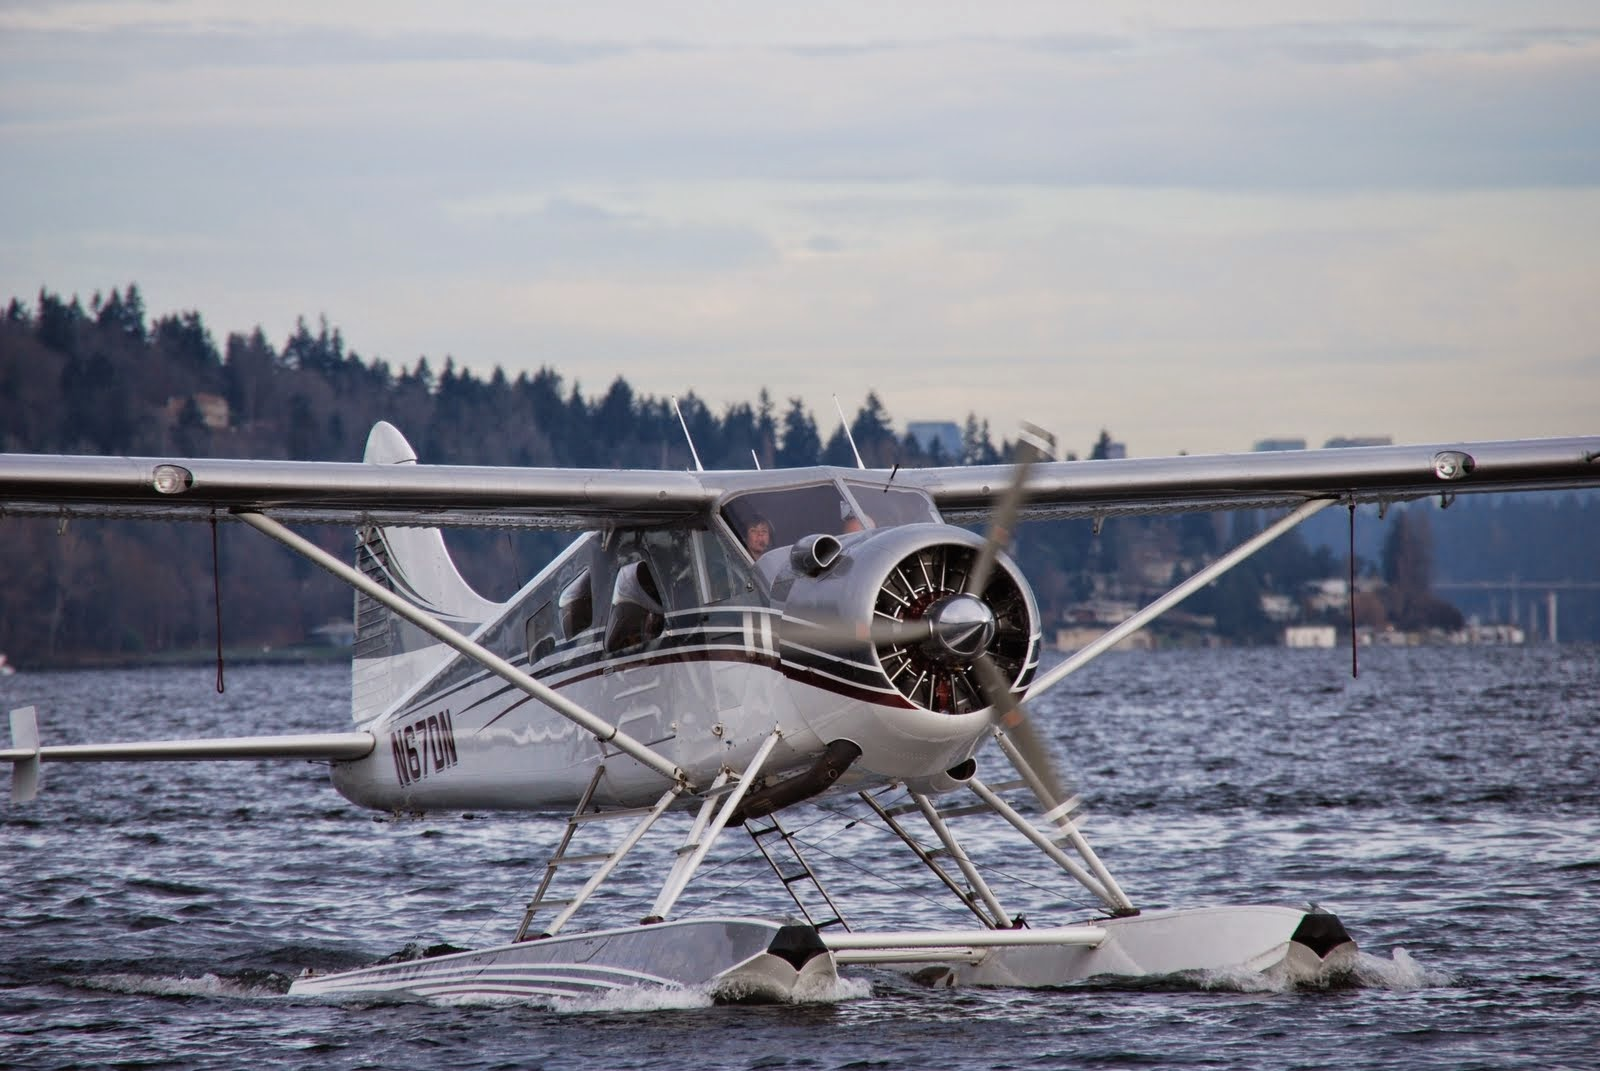 flight to success general aviation safety